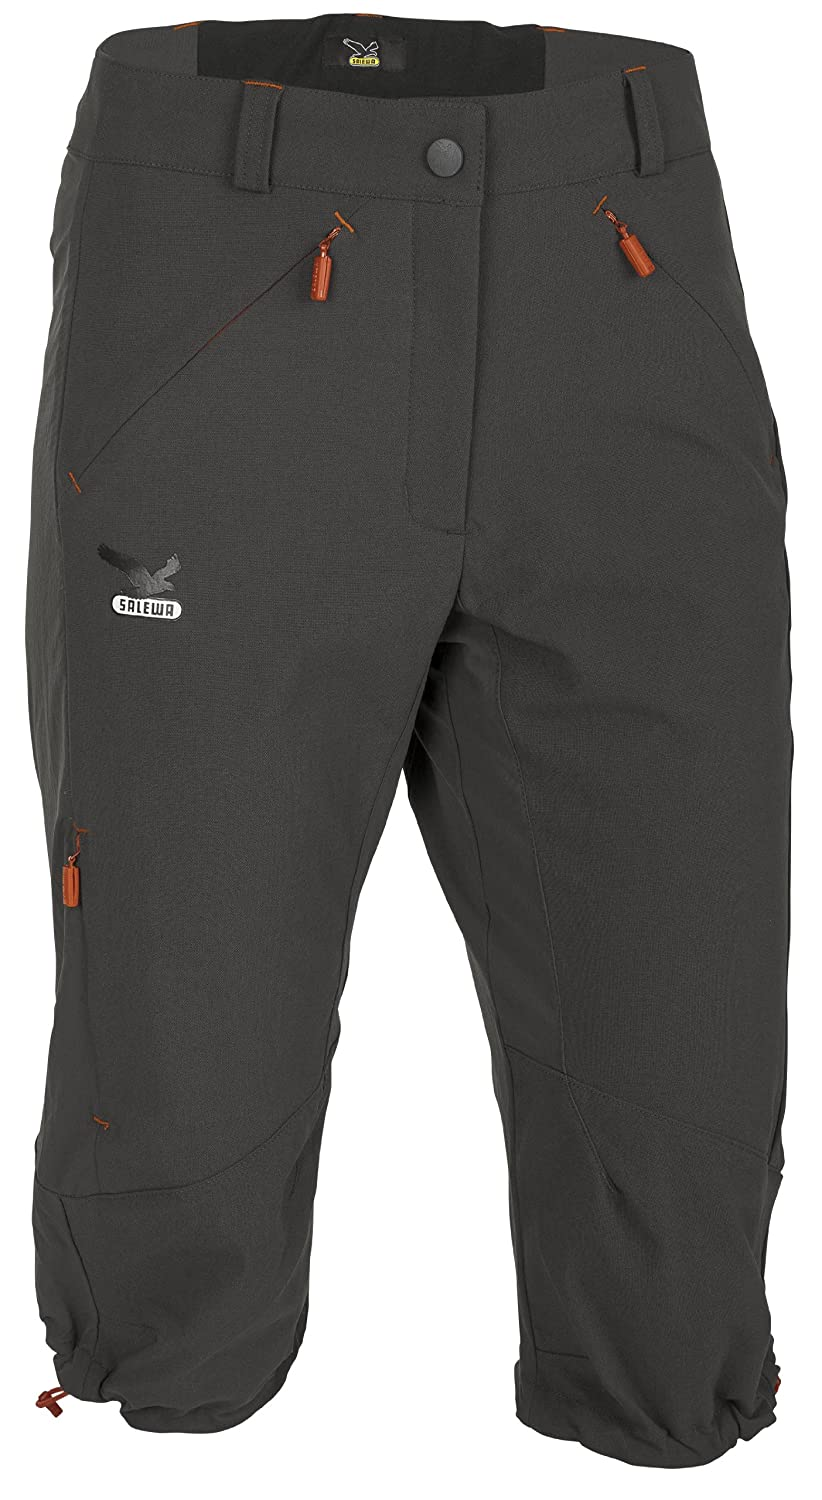 SALEWA Damen Hose Lagginhorn Dst W 3/4 Pants